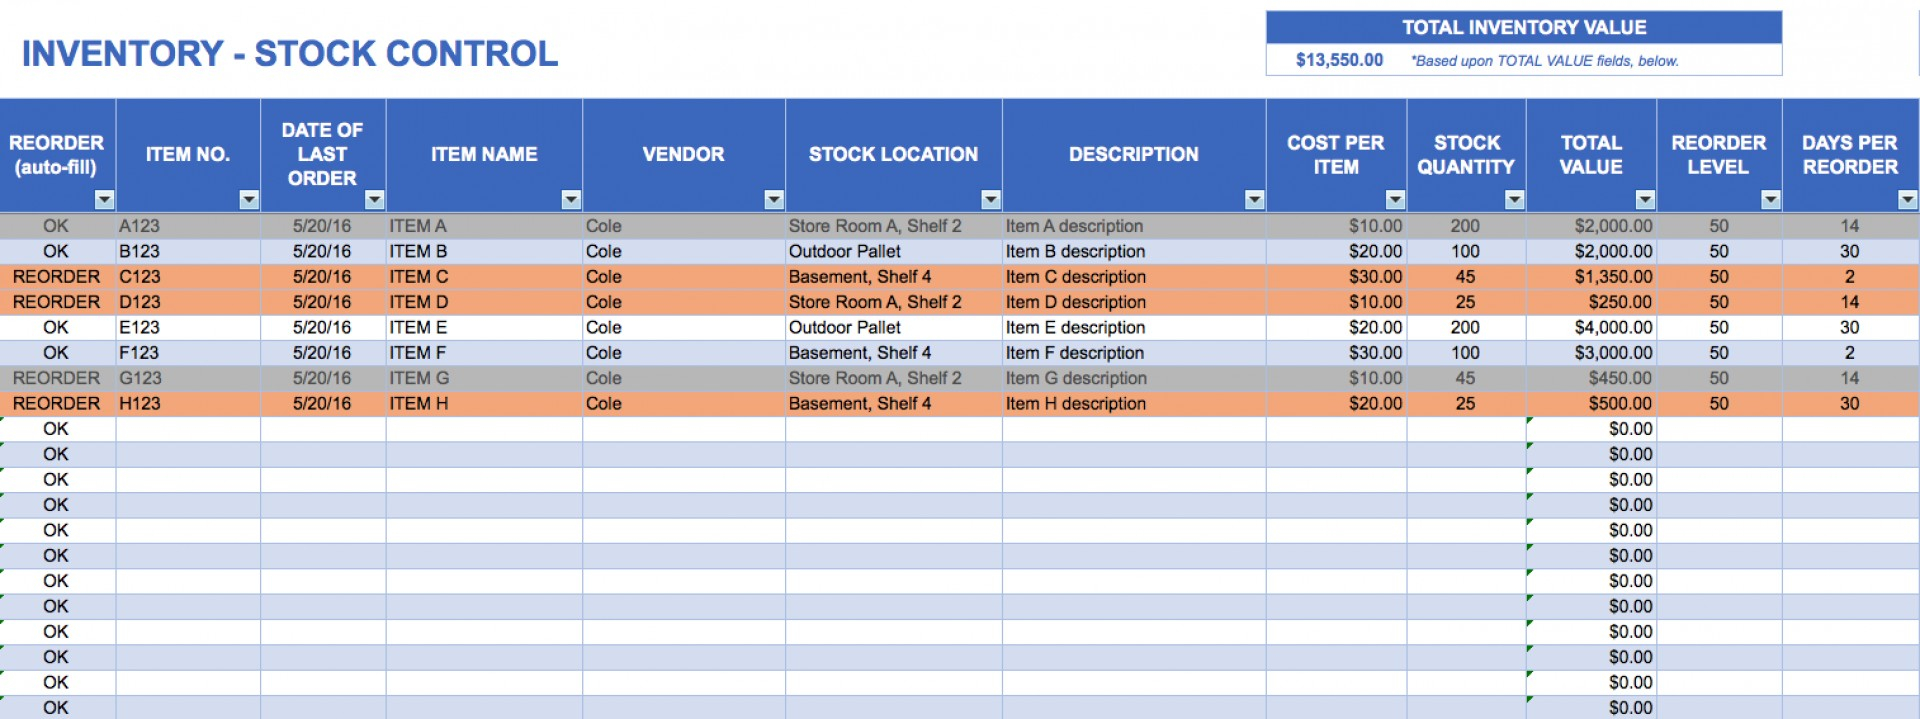 How To Do An Inventory Spreadsheet On Excel For 004 Template Ideas Inventory Spreadsheet Excel Product Tracking